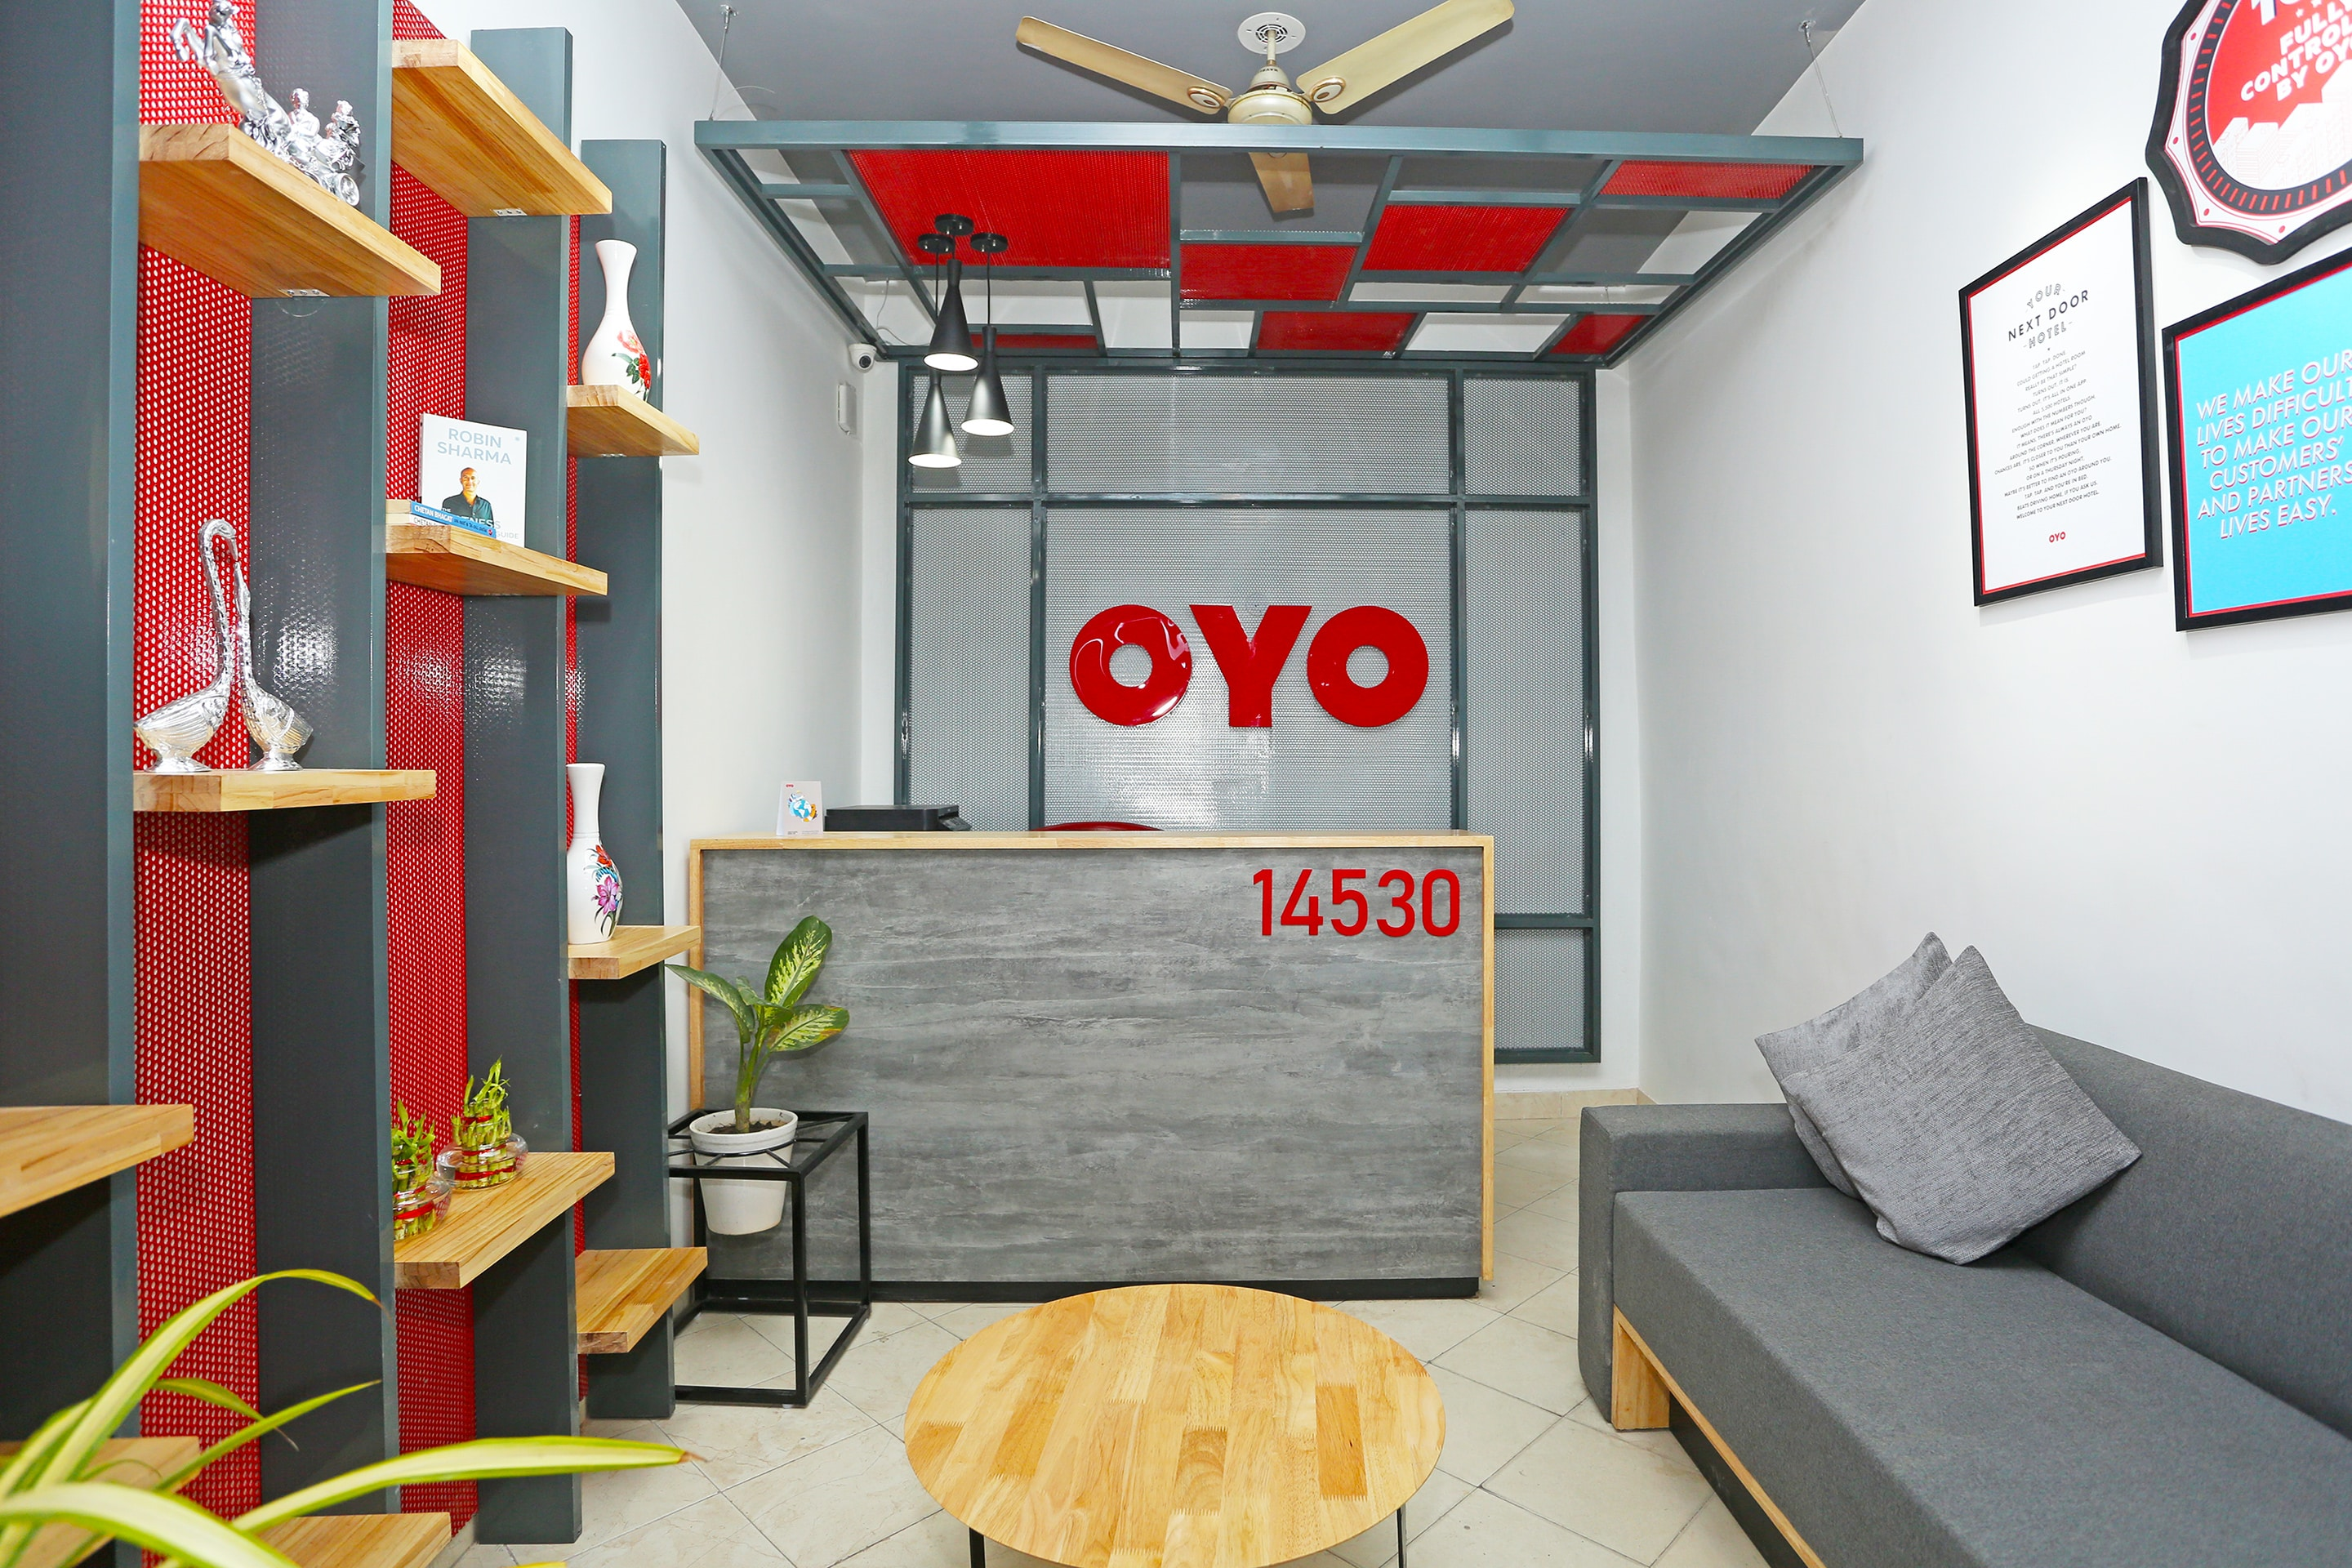 Next Sofa Helpline Oyo Flagship 14530 Sector 14 Harsh Villa Gurgaon Gurgaon Hotel